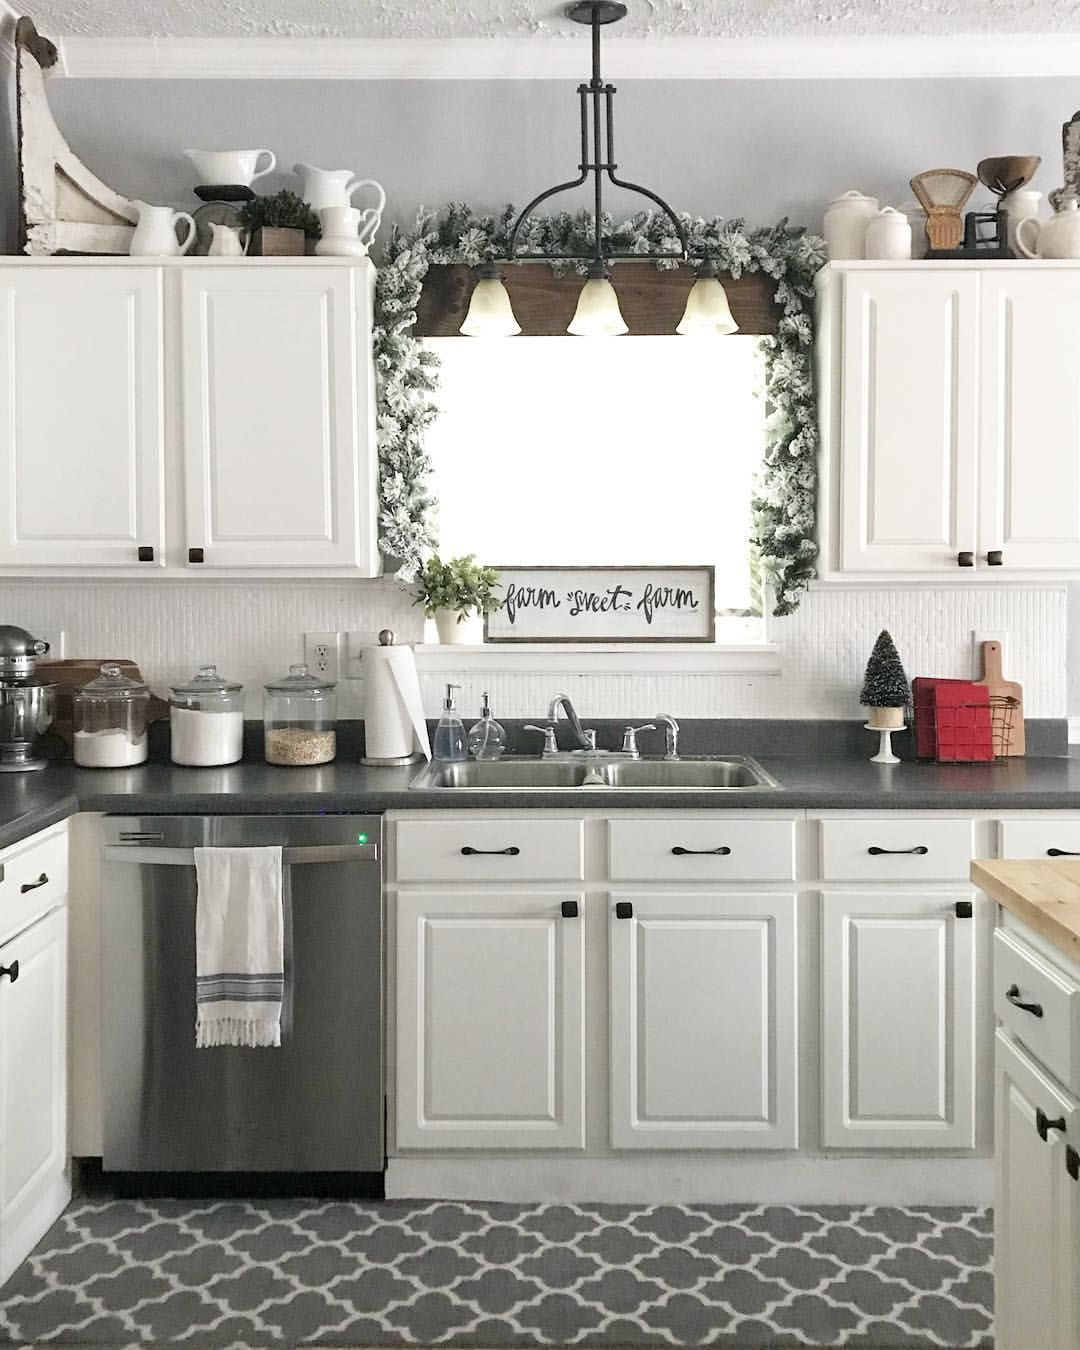 farmhouse christmas kitchen white kitchen farmhouse kitchen inspiration on kitchen cabinets xmas decor id=93752